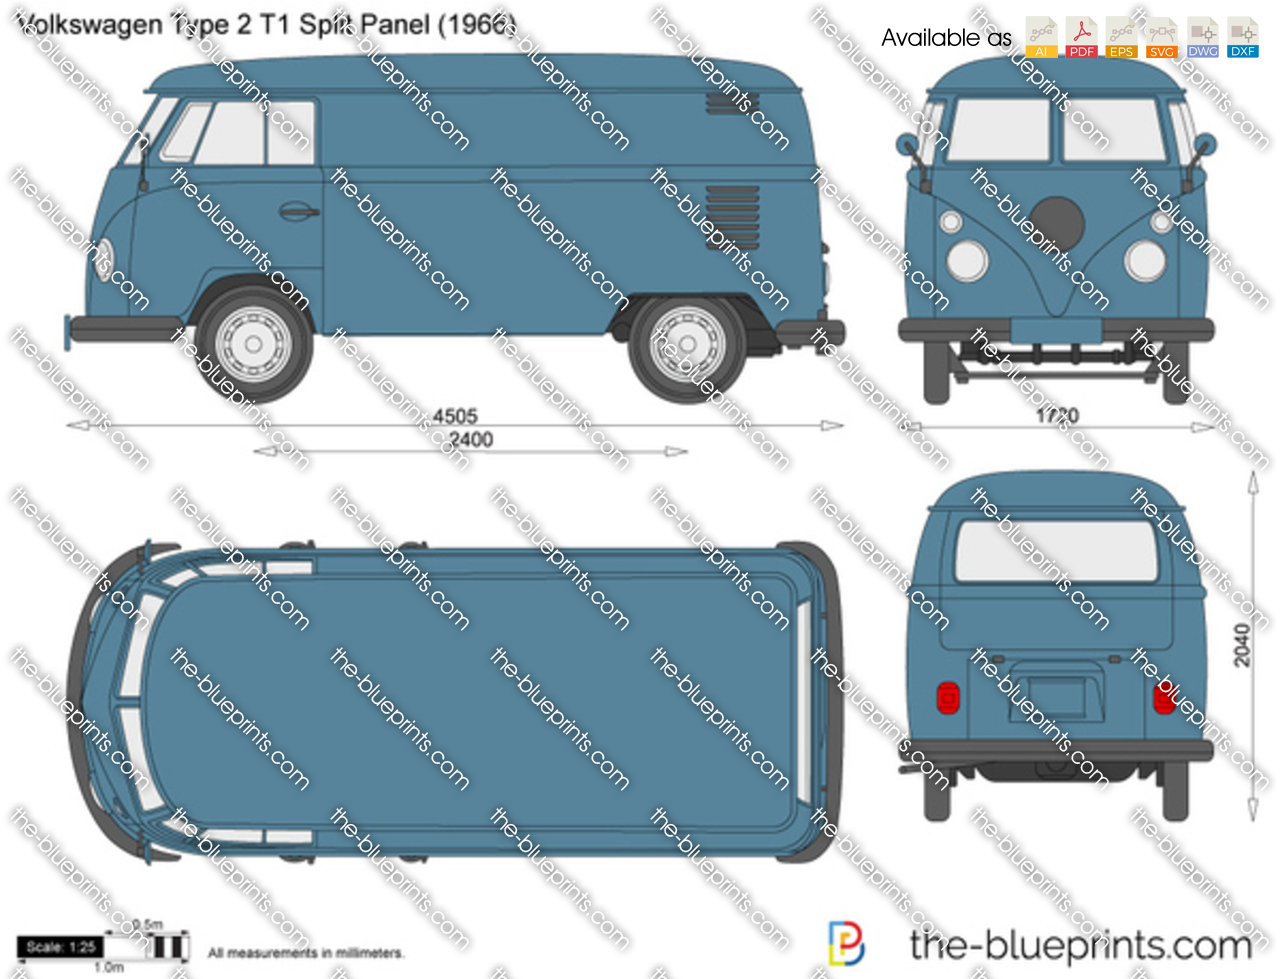 1956 Volkswagen Type 2 T1 Split Panel